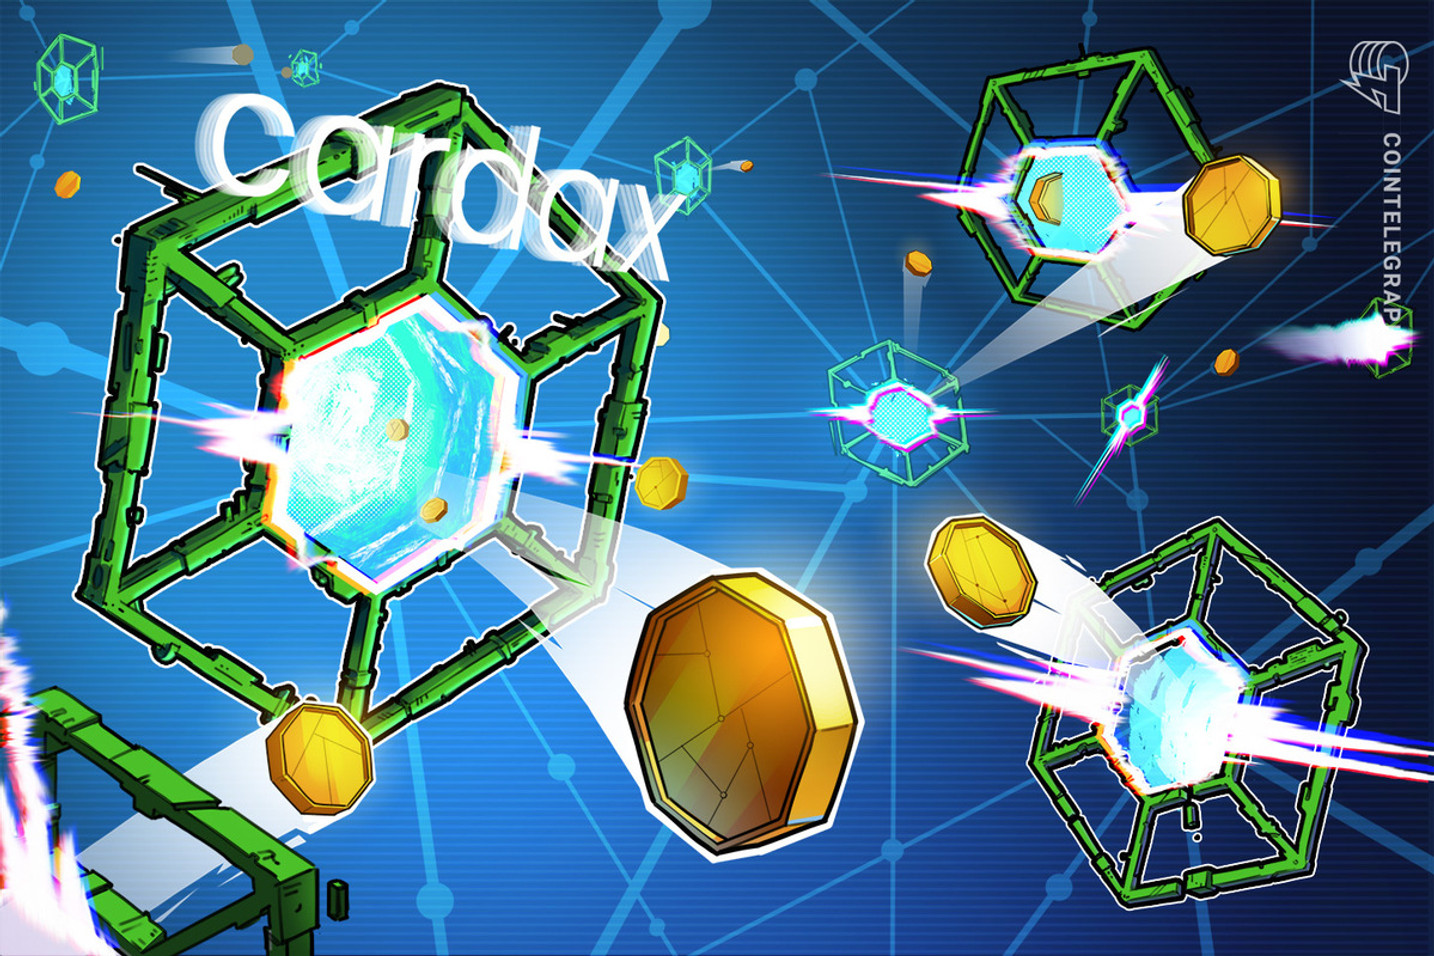 This decentralized exchange has plans to become the Uniswap of the Cardano ecosystem